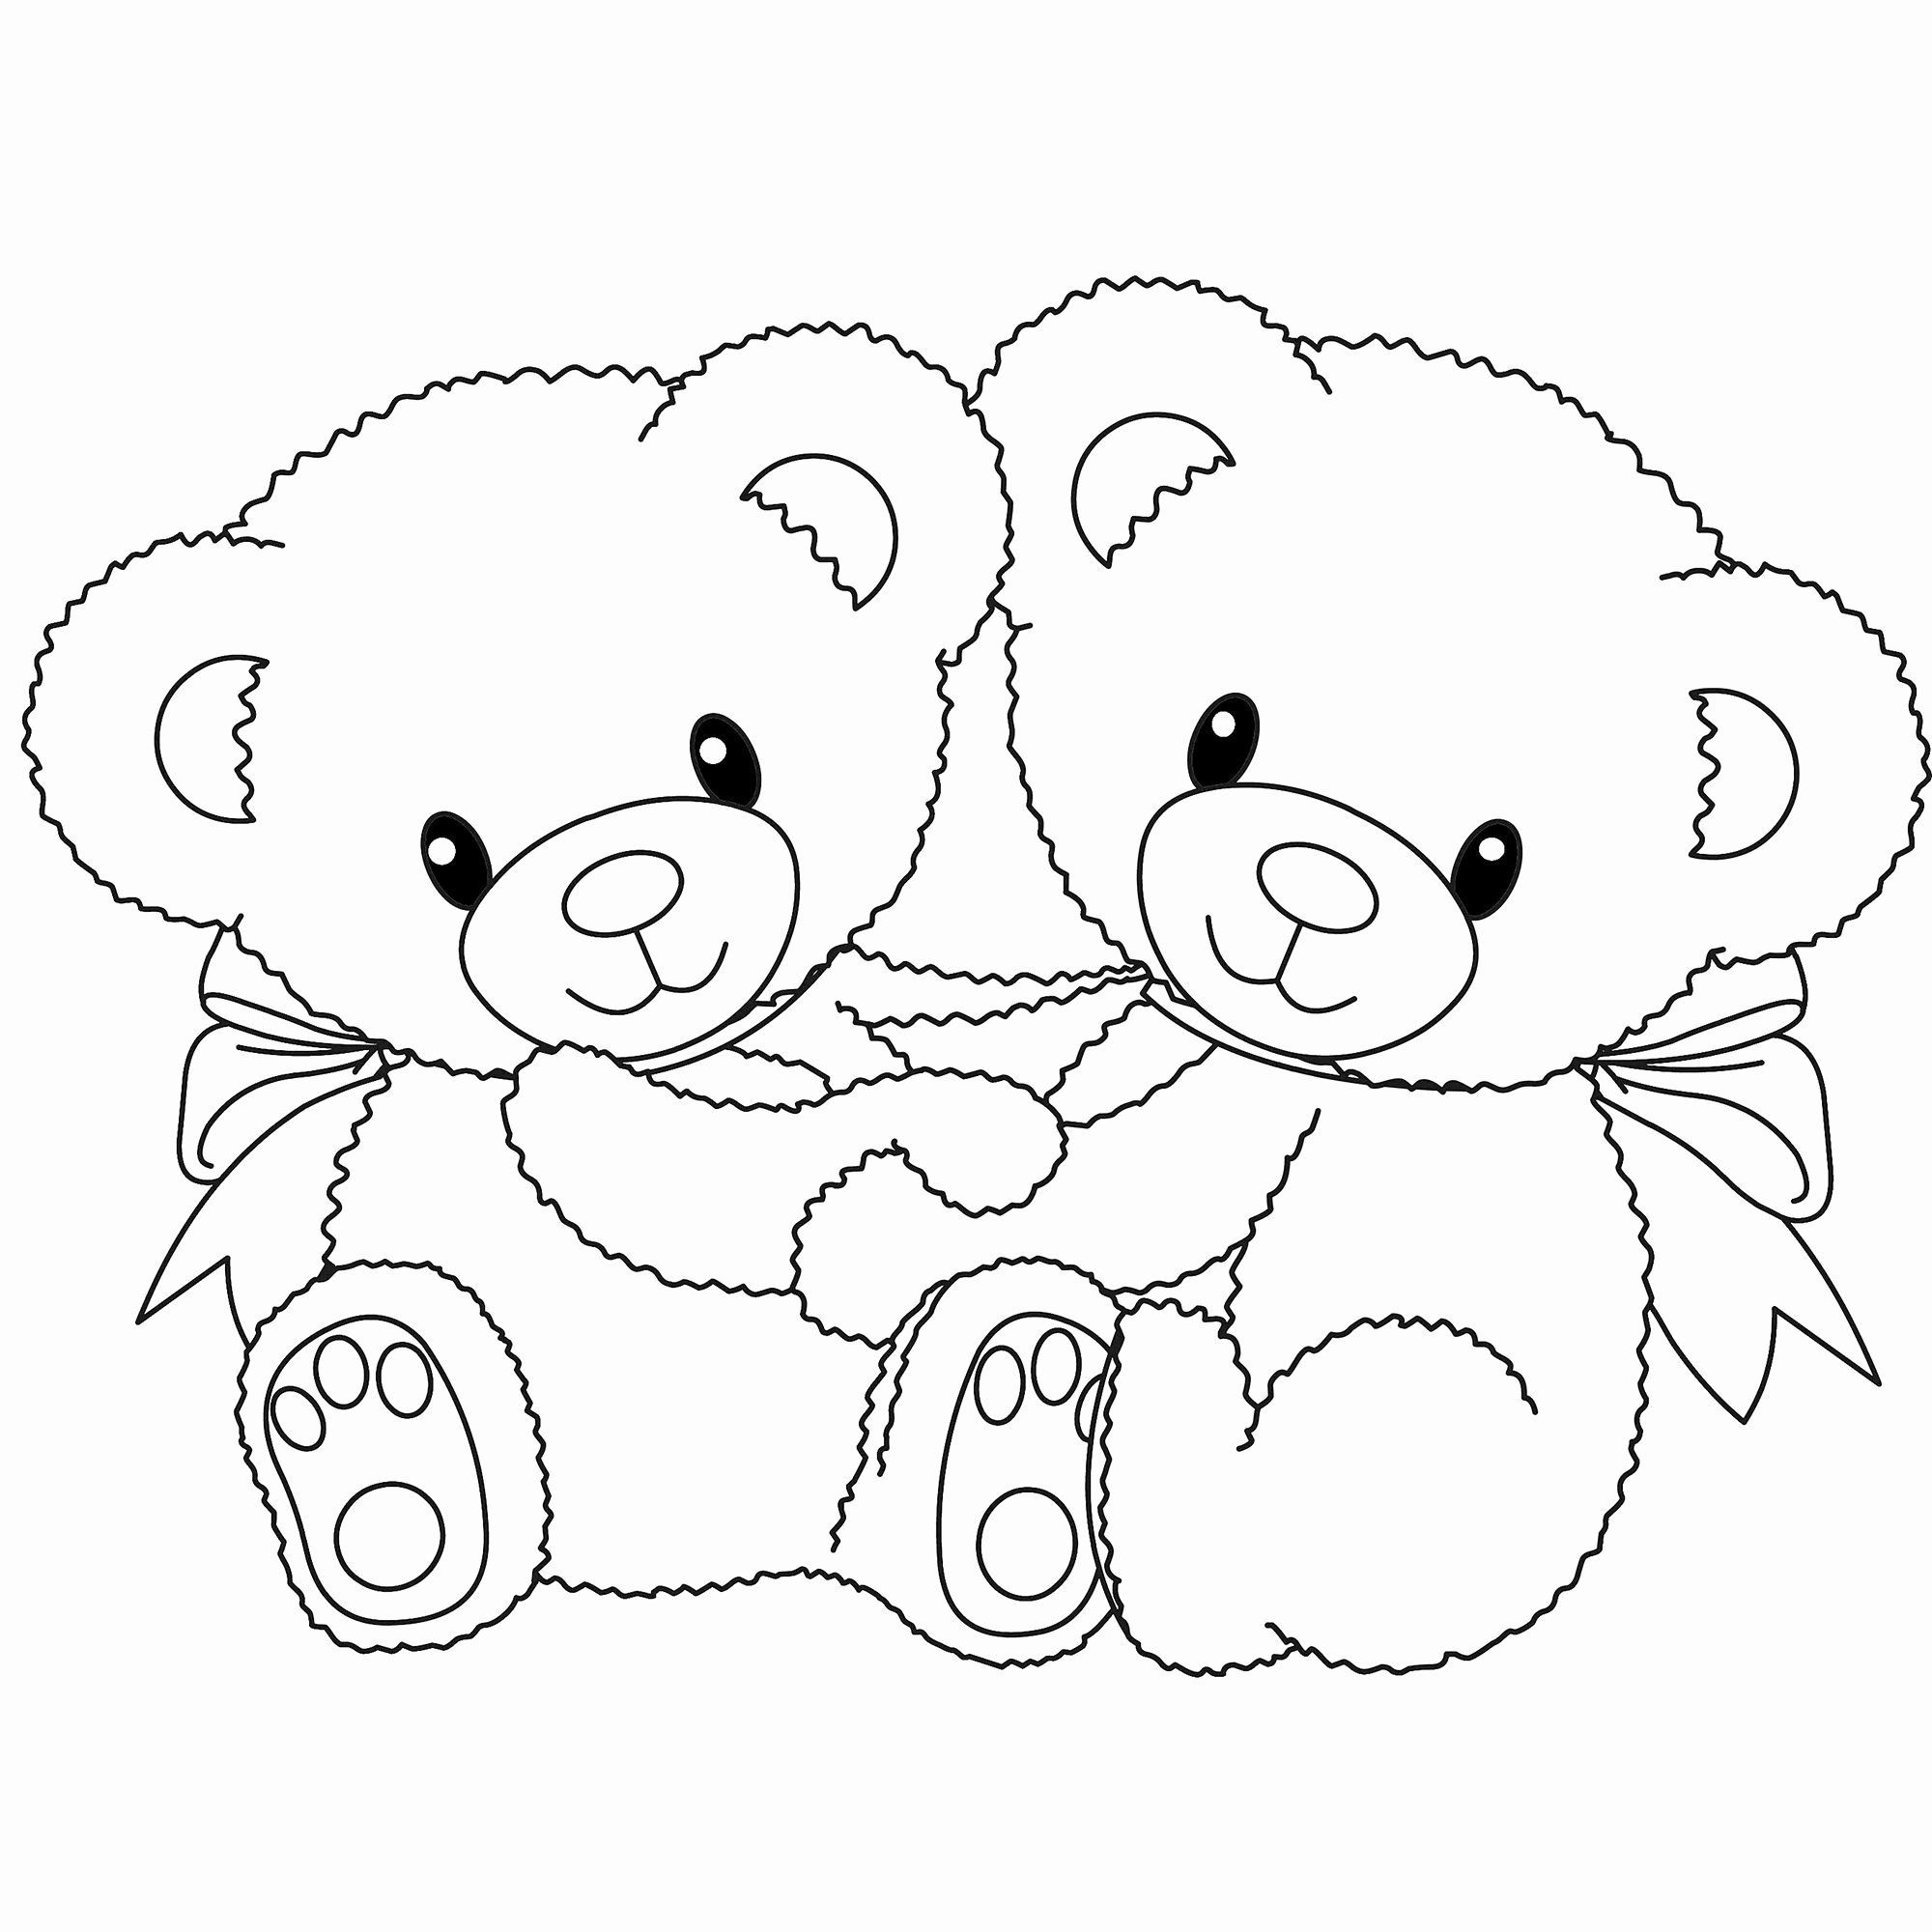 Coloring Cartoon Bears In 2020 Teddy Bear Coloring Pages Panda